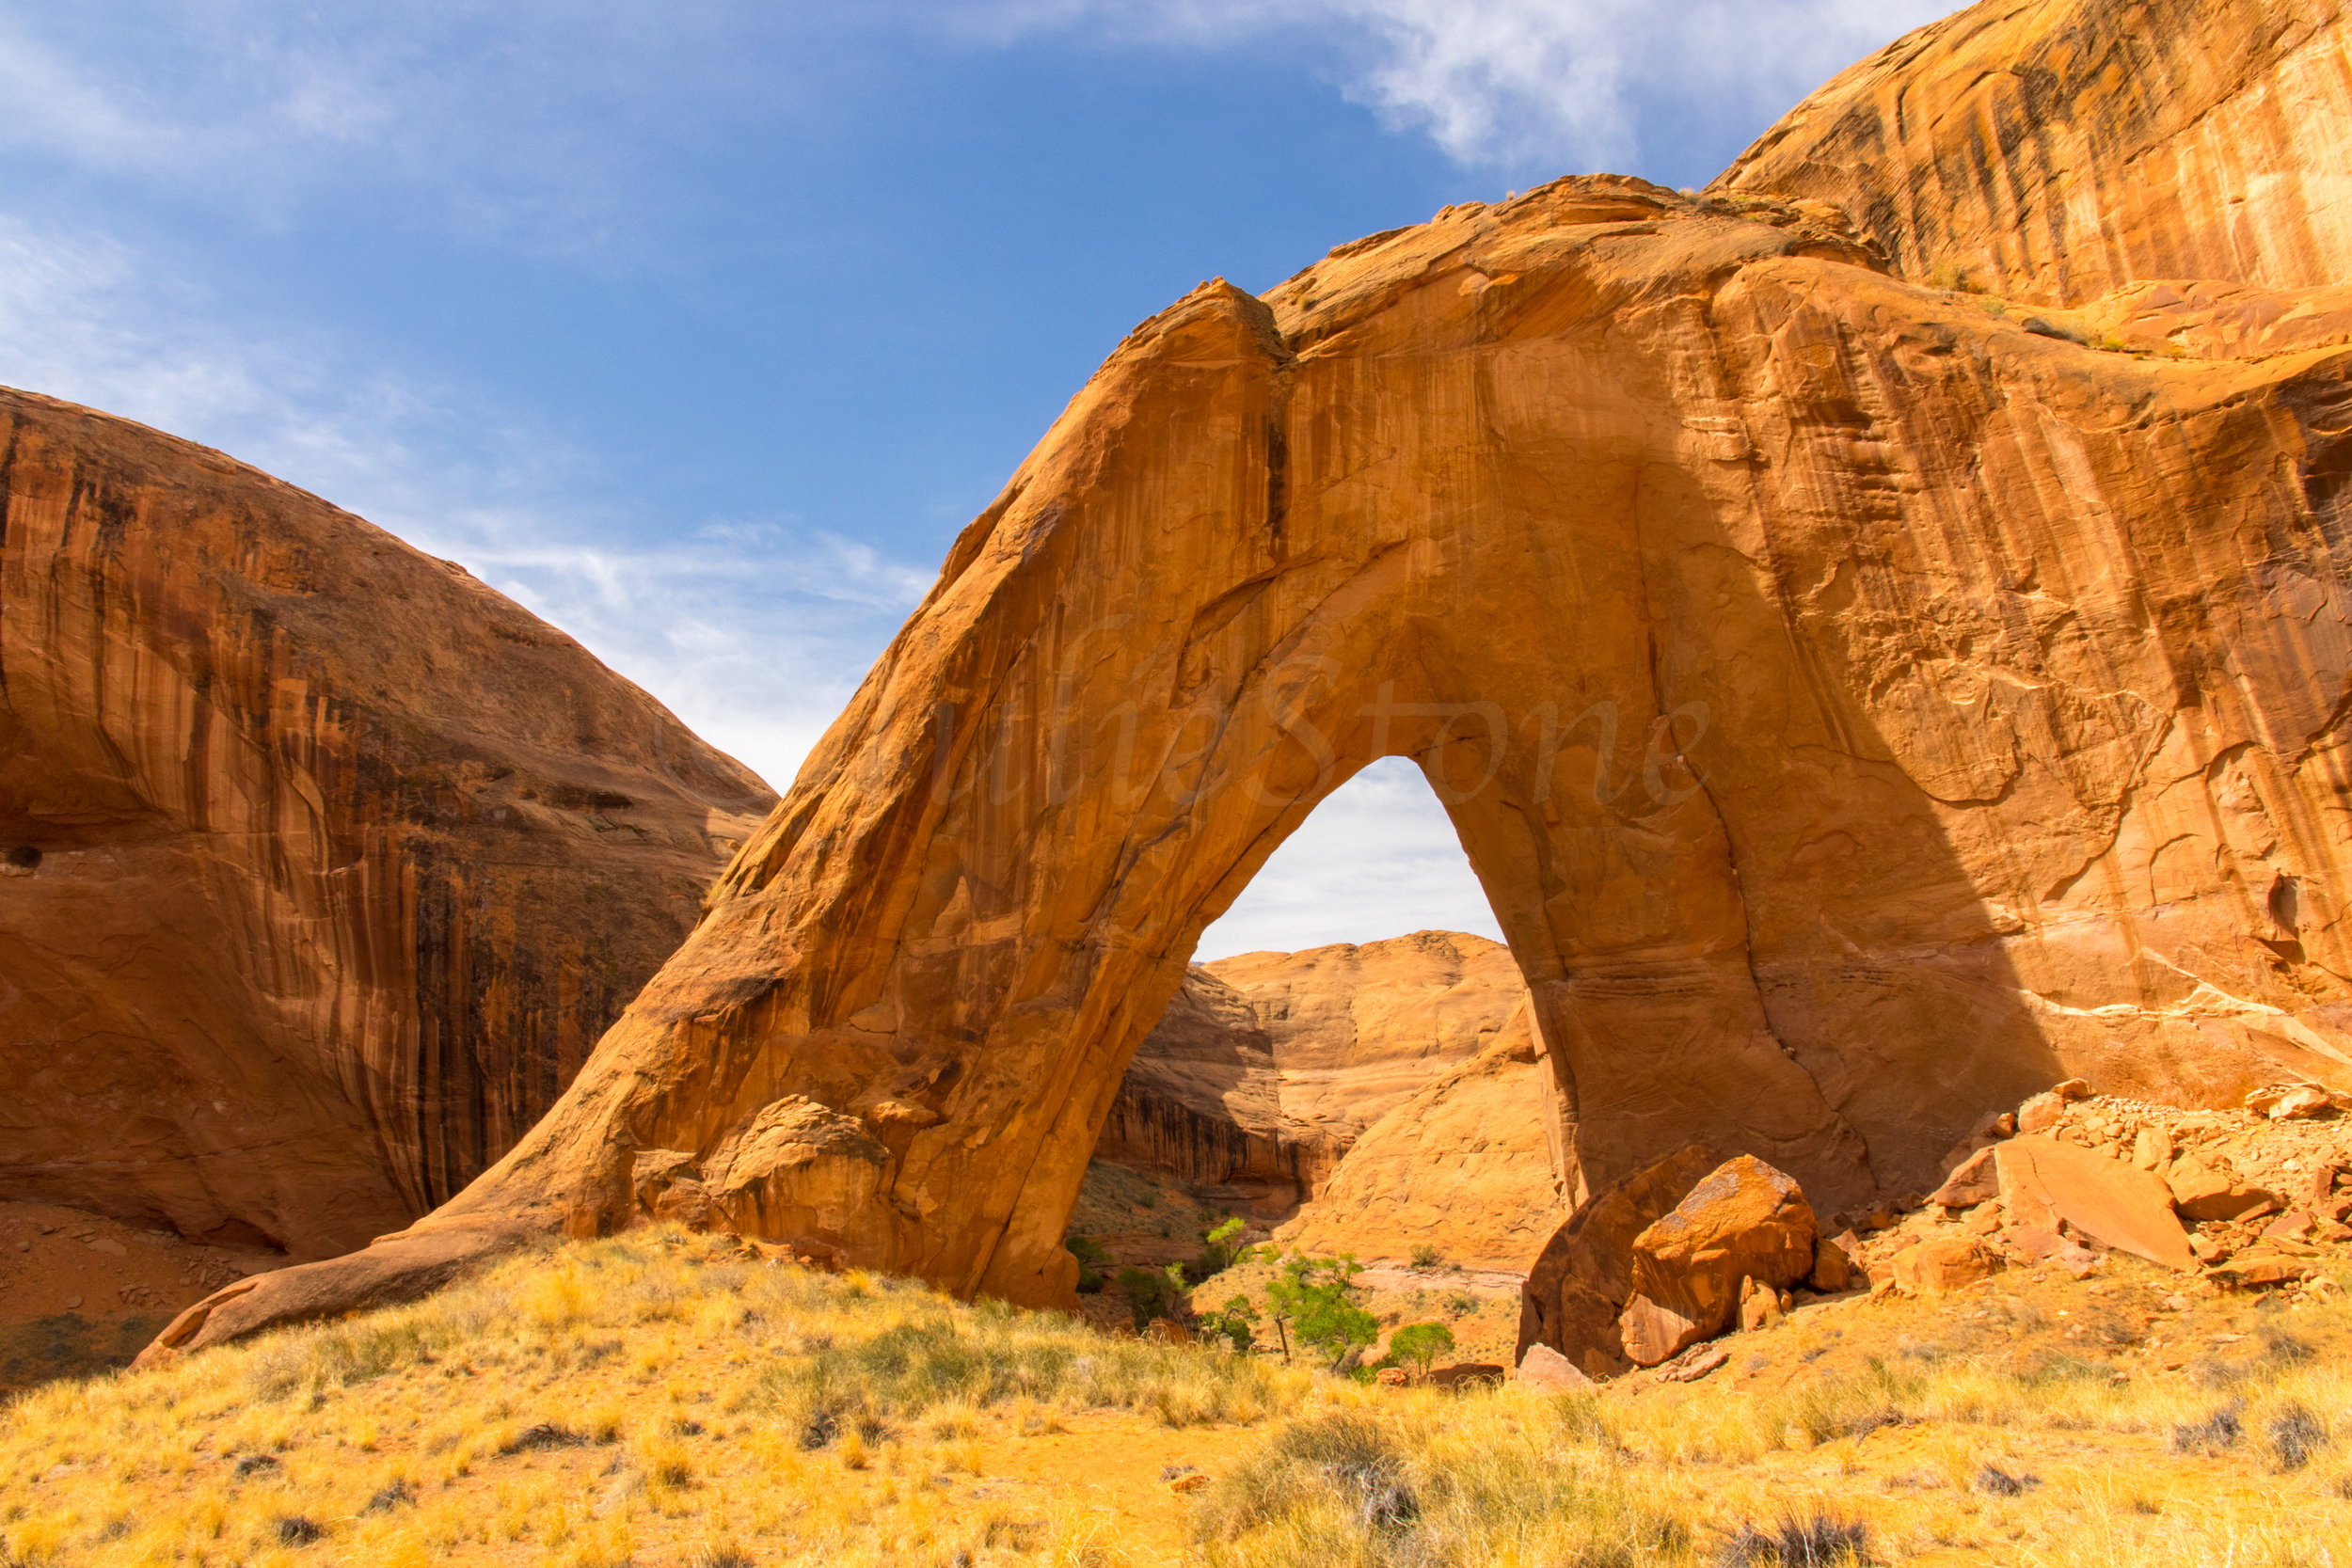 Bow Arch, Image # 2136